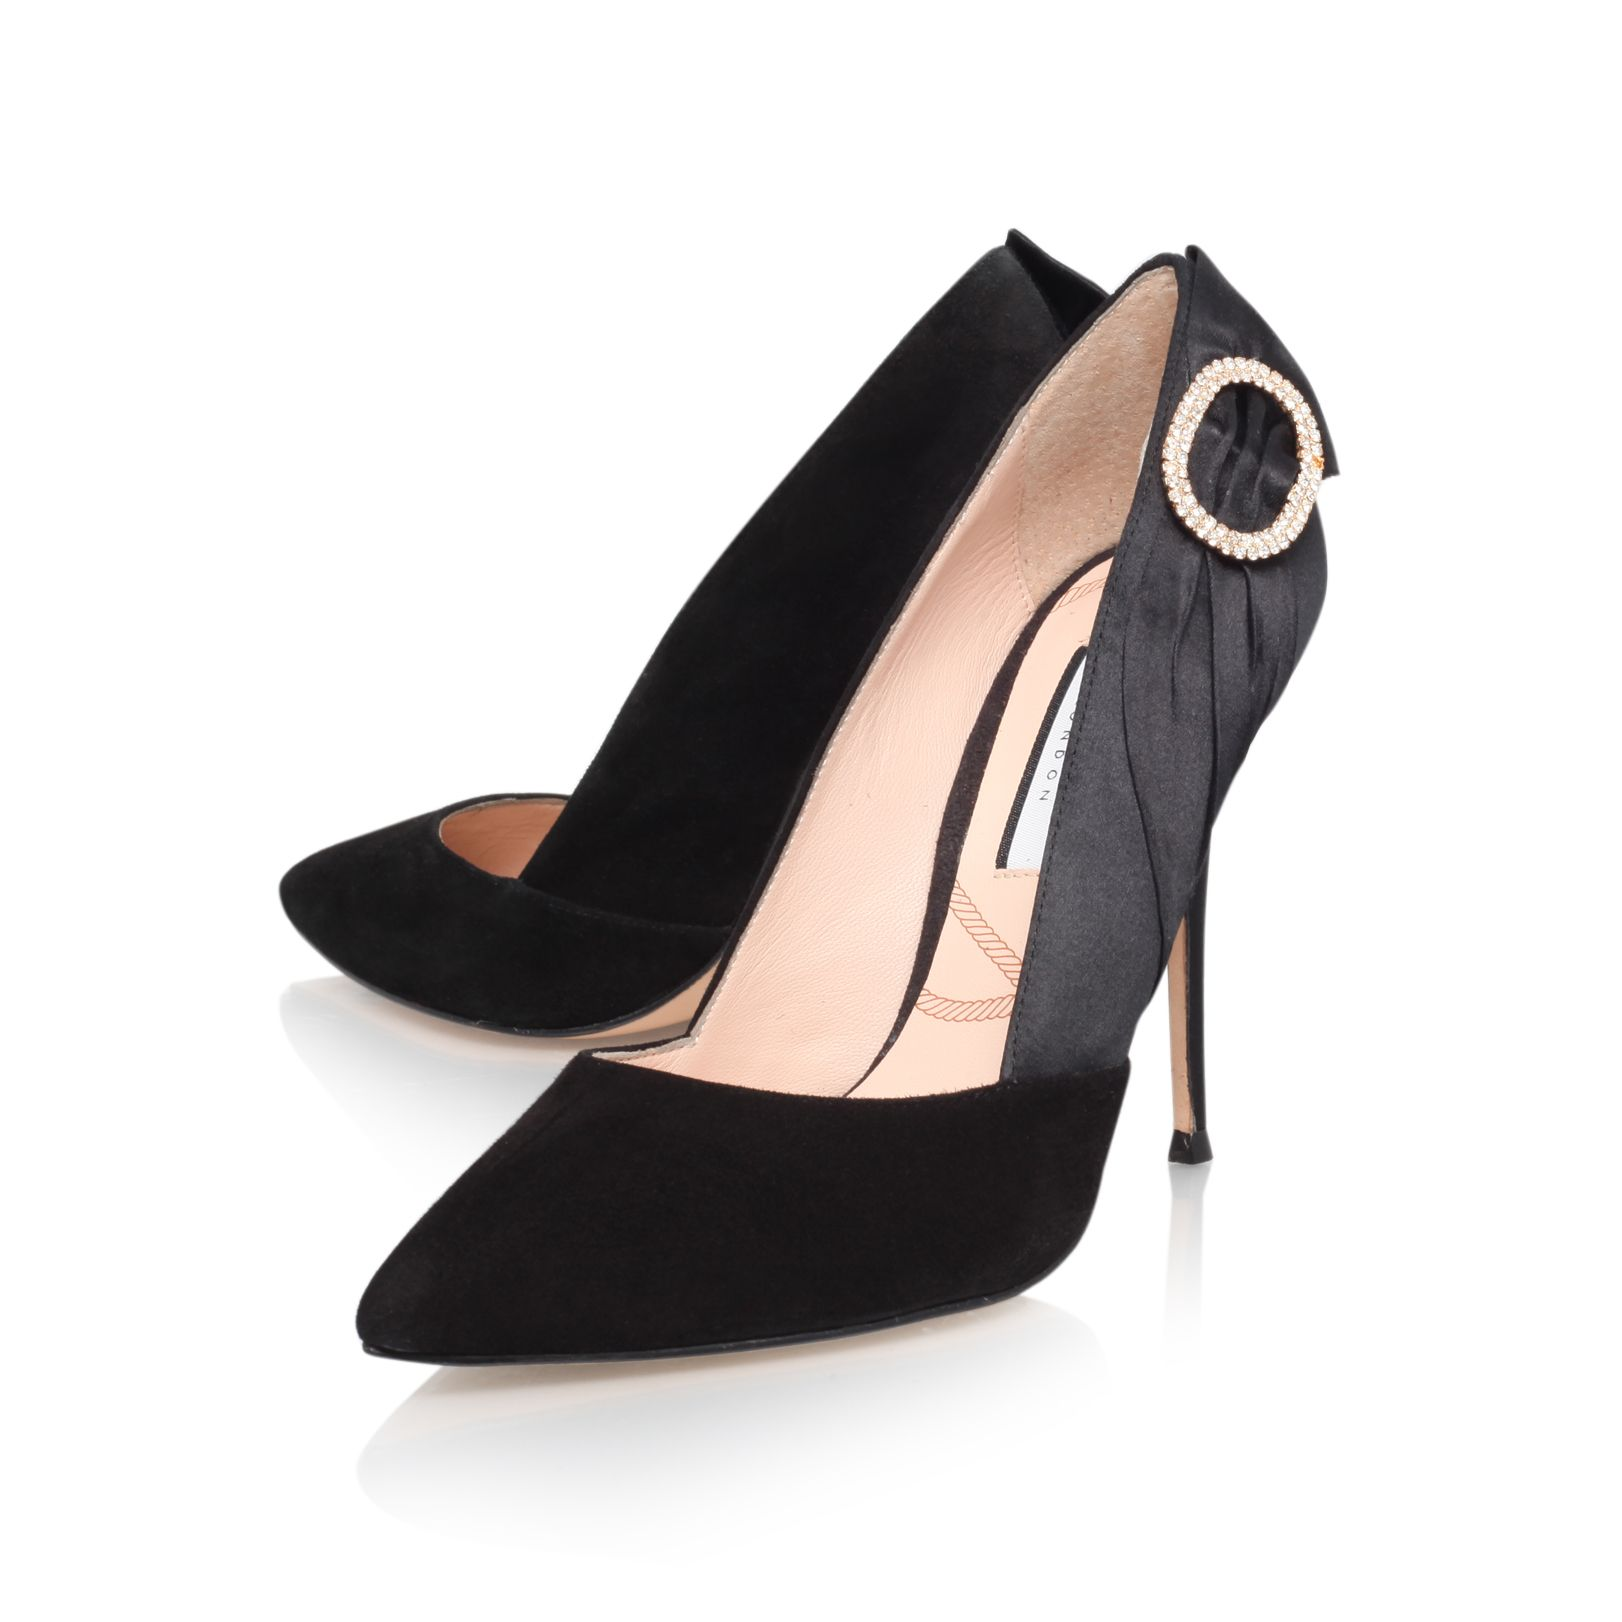 Eloise high heel court shoes